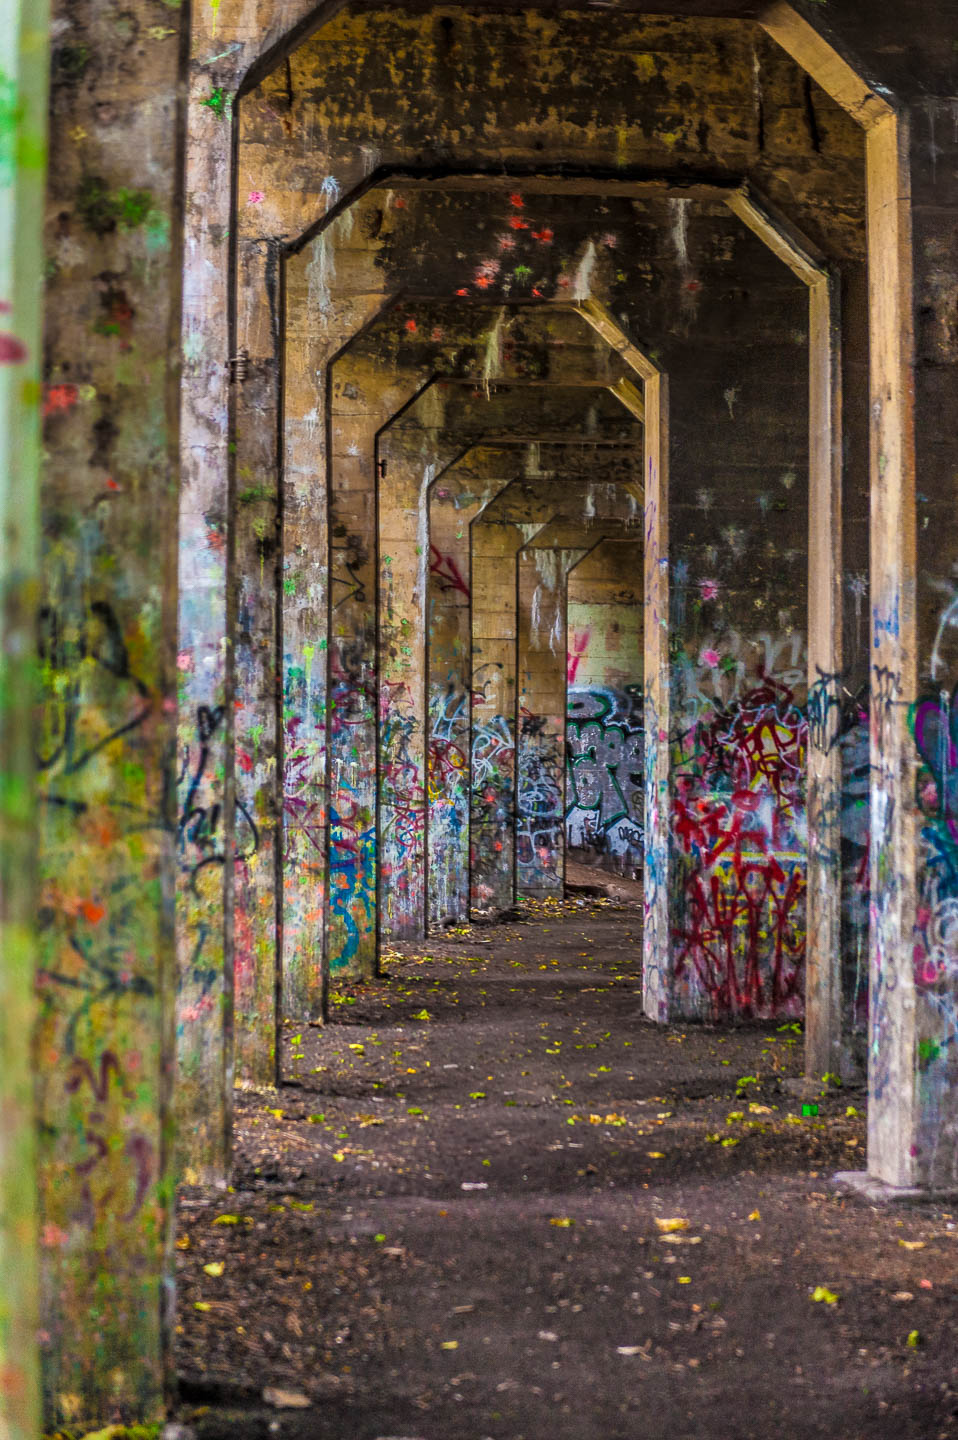 coal-piers-graffiti-photos-3